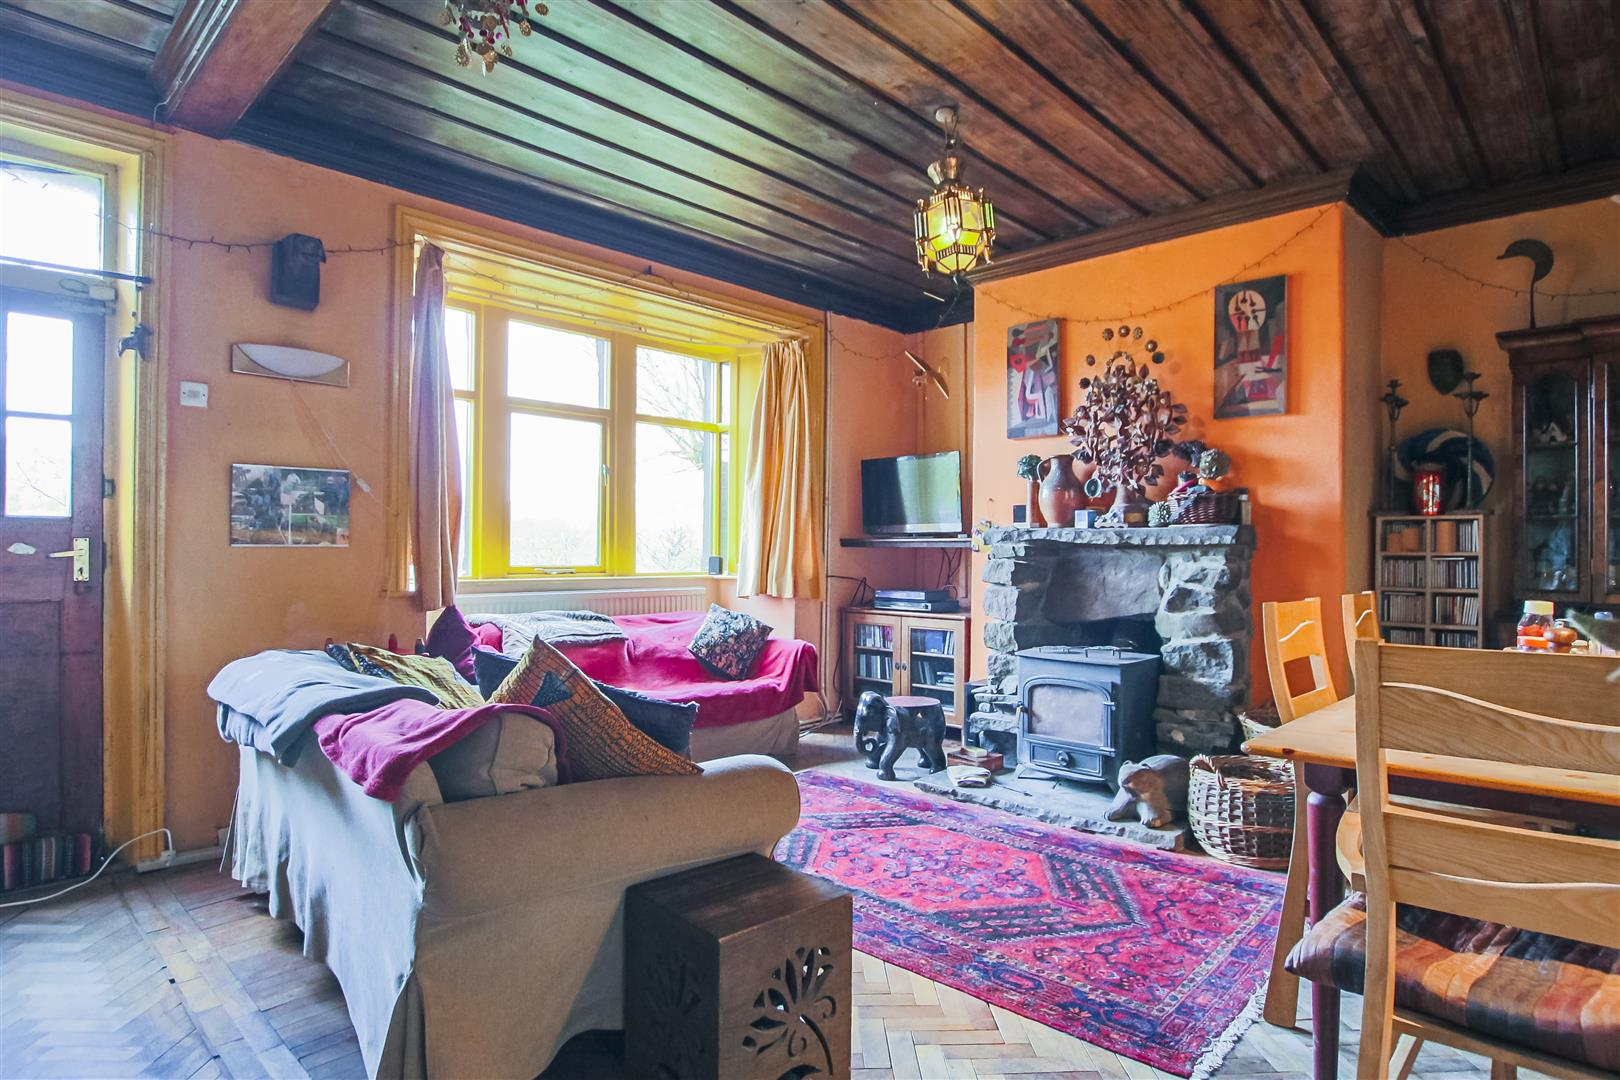 5 Bedroom Farmhouse For Sale - Image 29